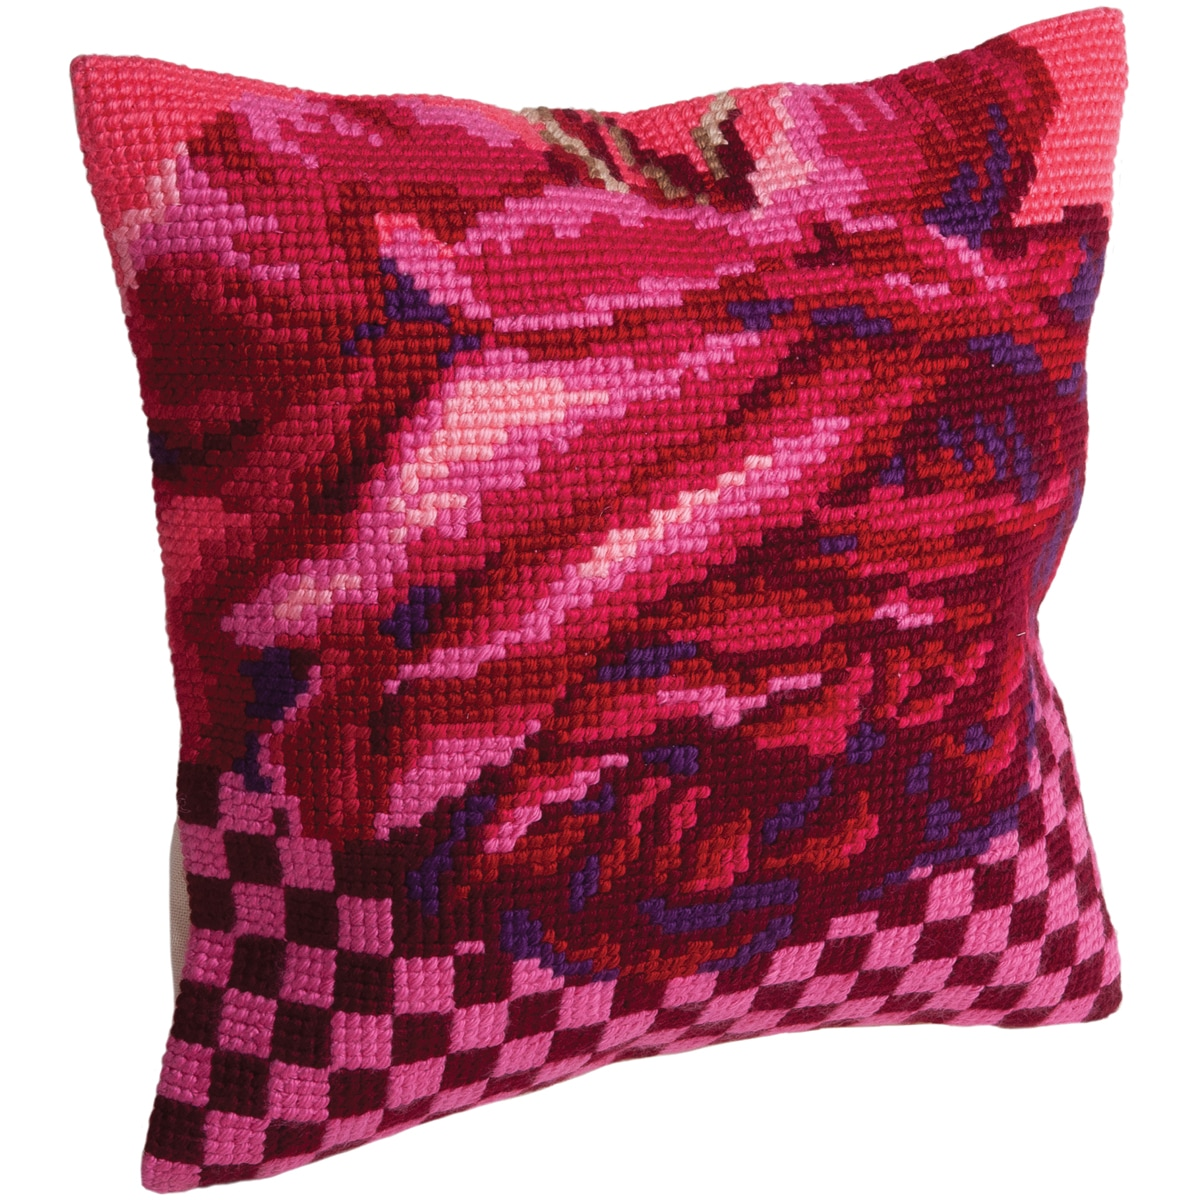 Rose Cocktail Pillow Cross Stitch Kit